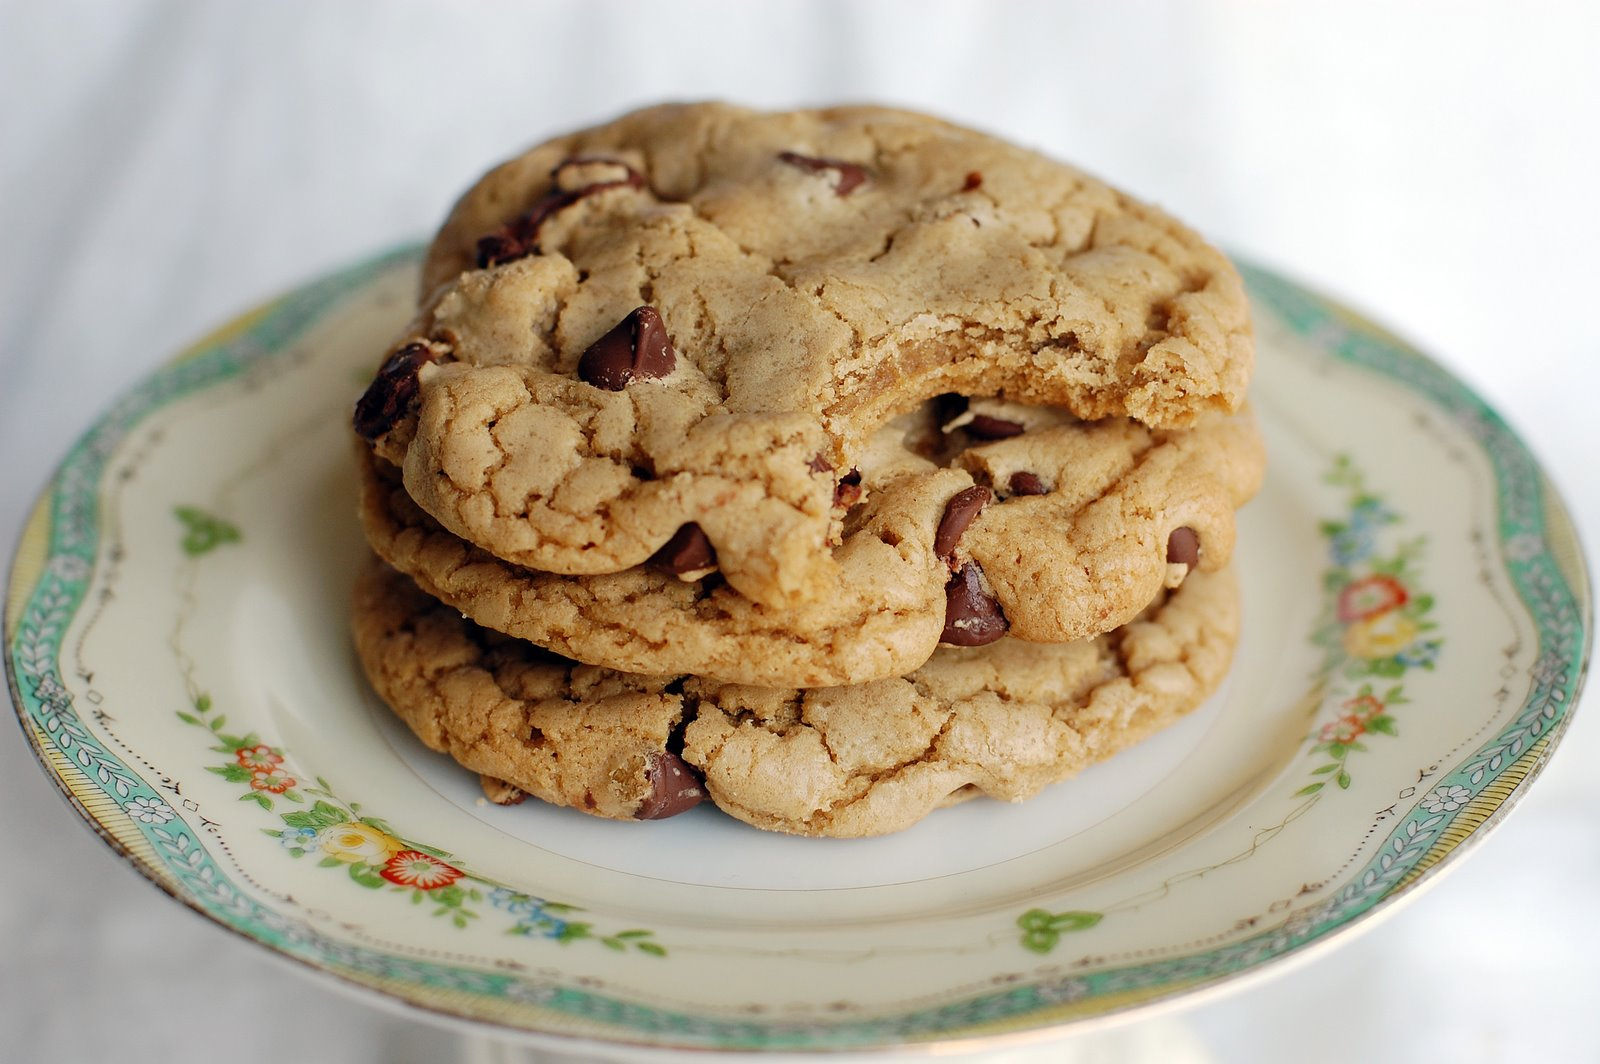 Barefoot and Baking: Browned Butter Chocolate Chip Cookies